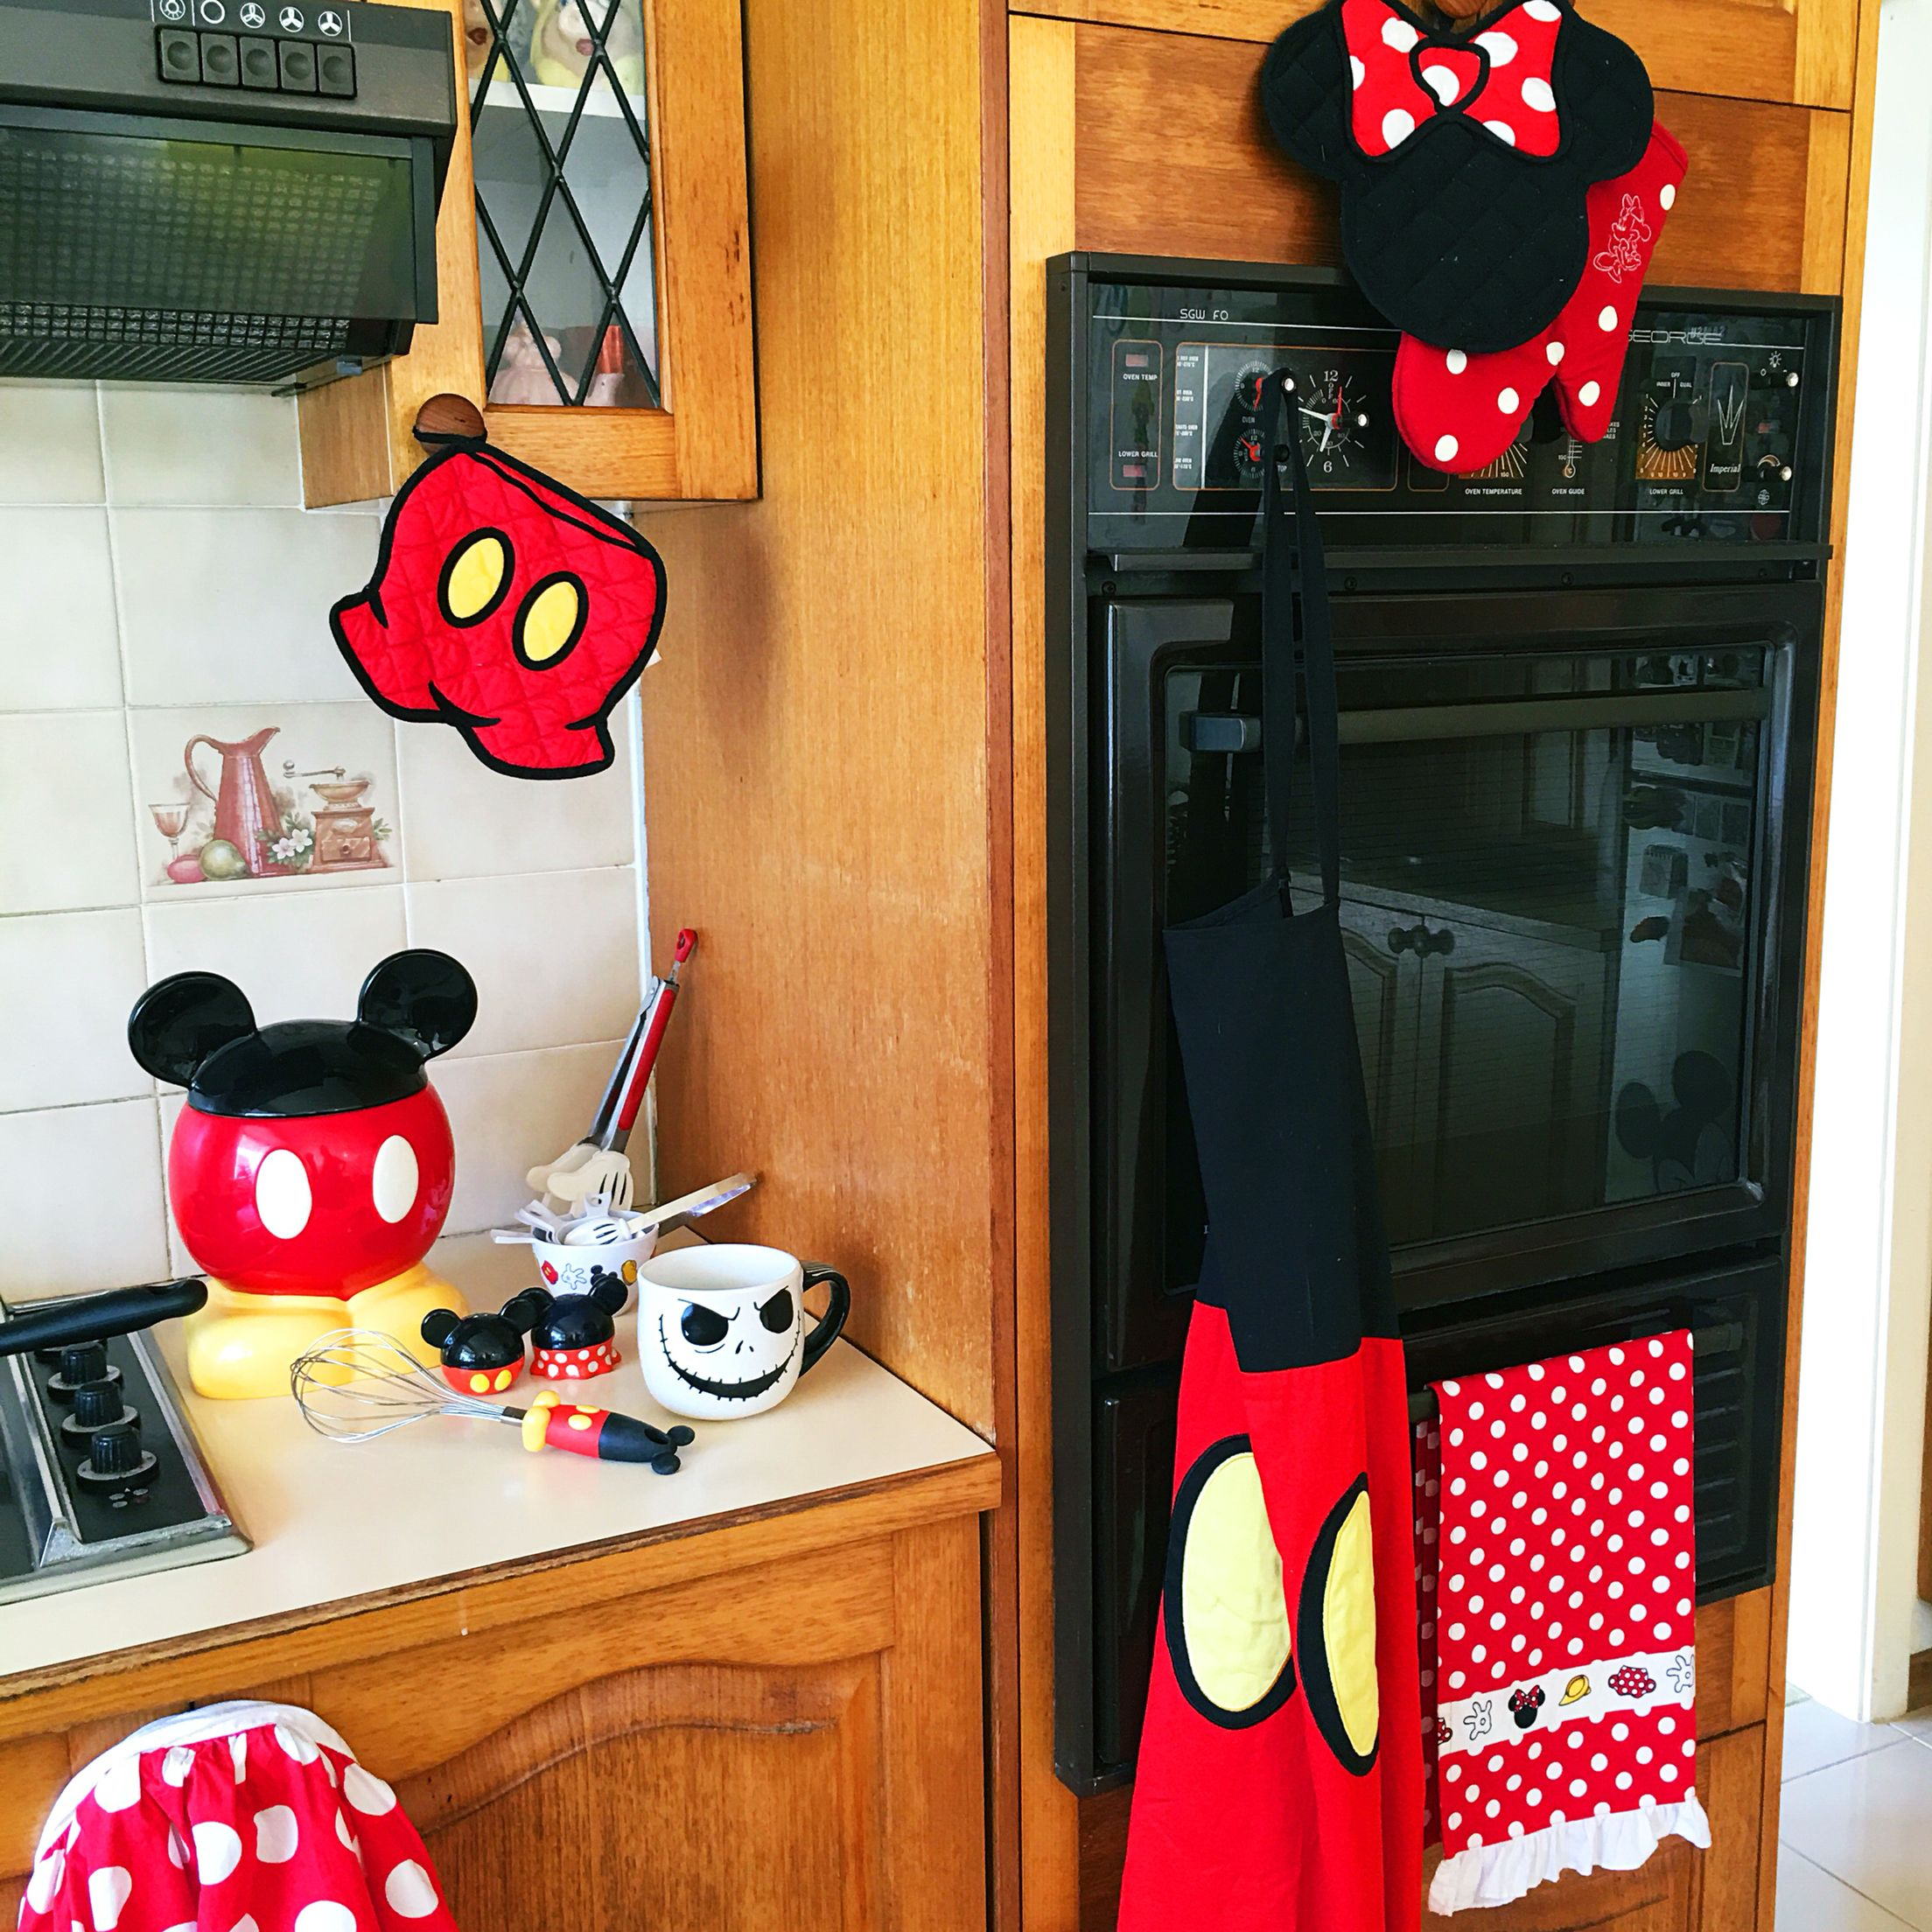 My Disney Kitchen: Disney Home & Decor